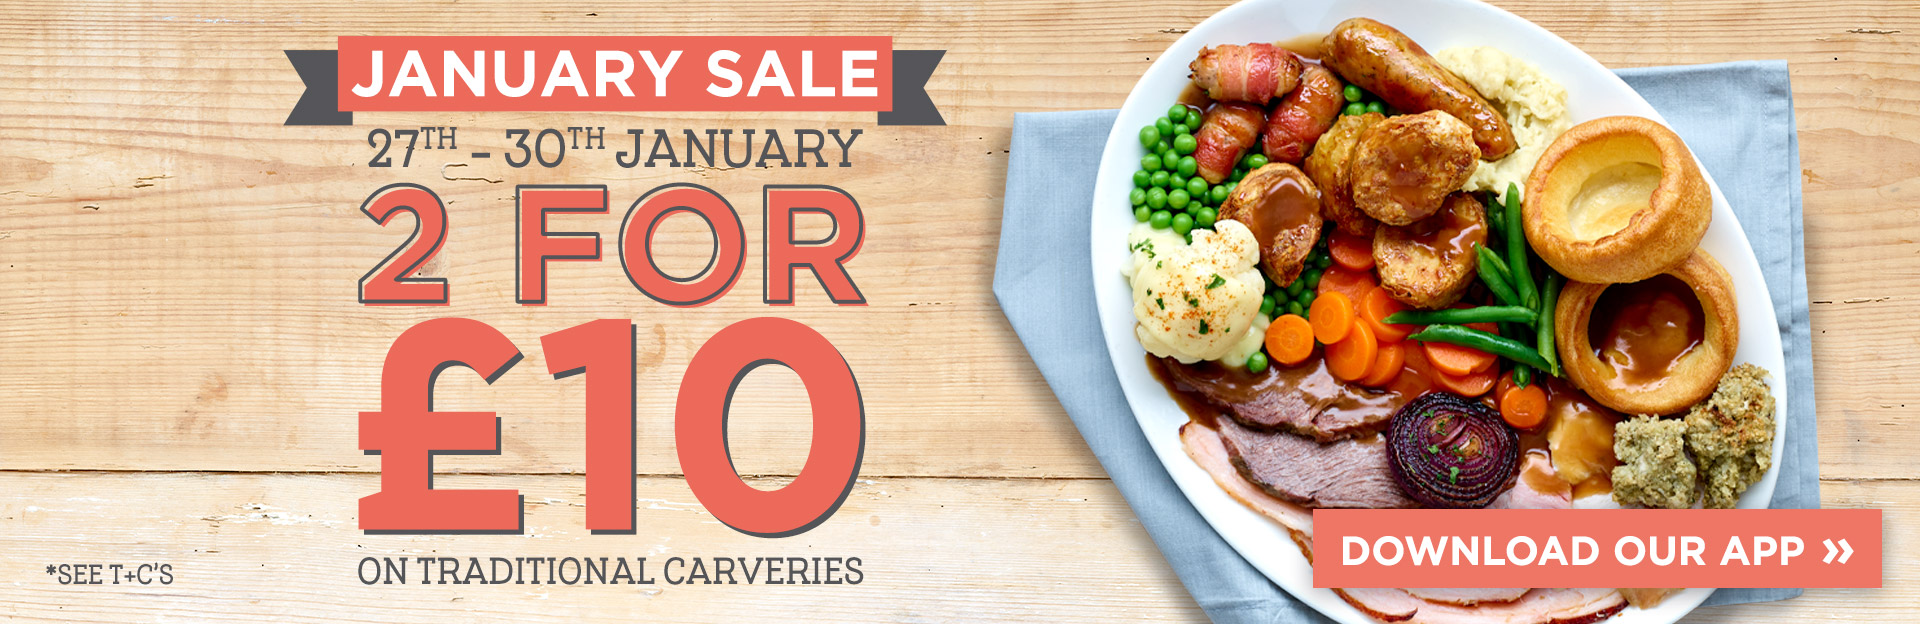 January Sales at The Pretty Pigs